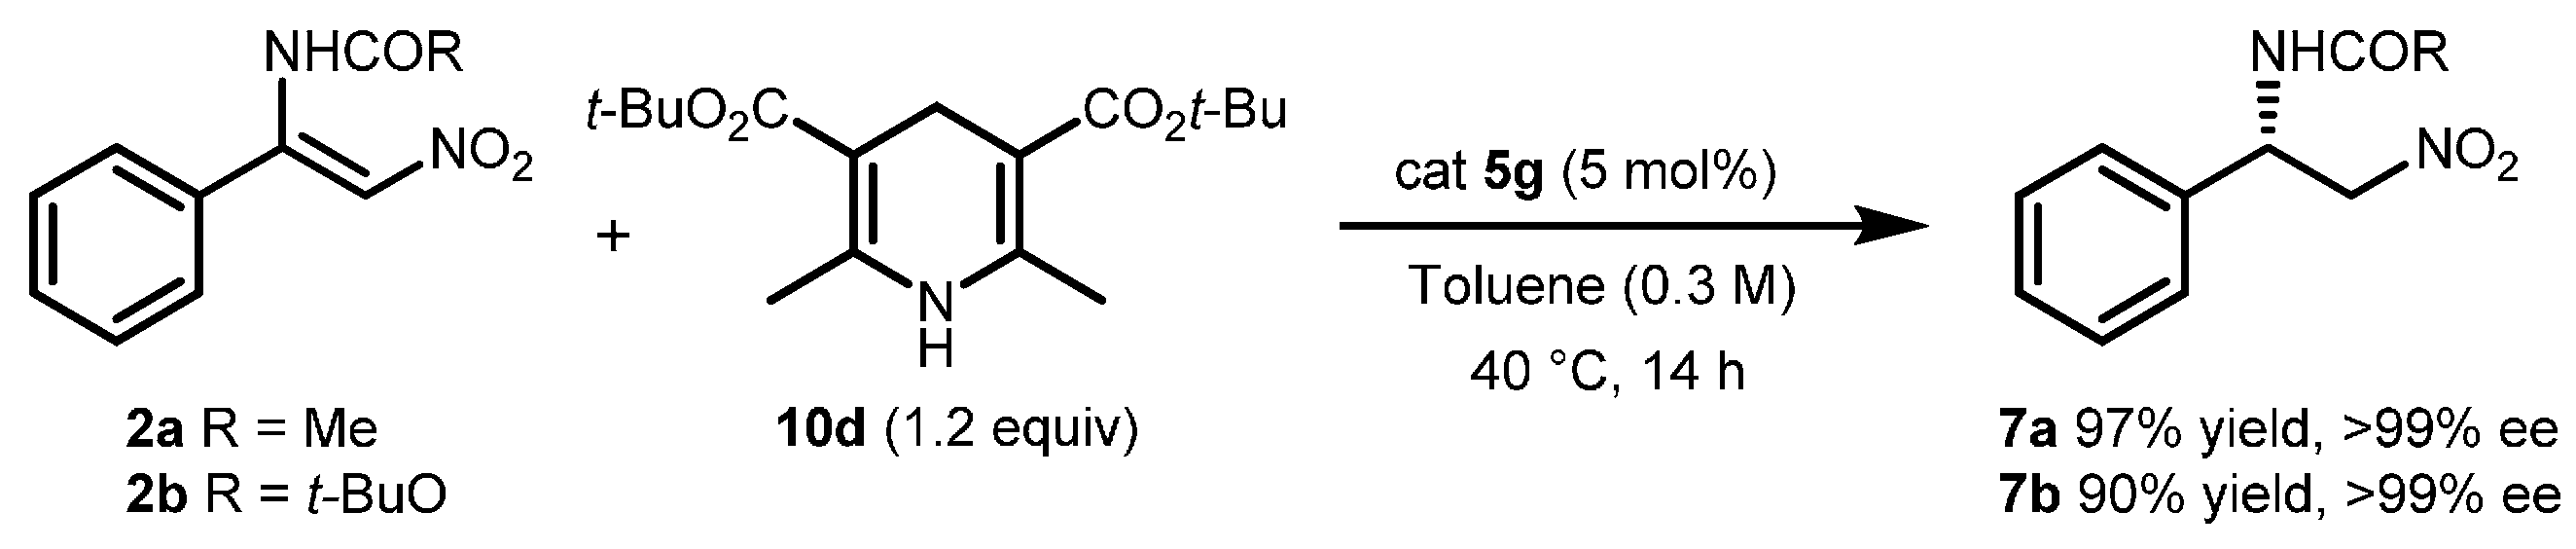 A conduction of a catalytic hydrogenation experiment